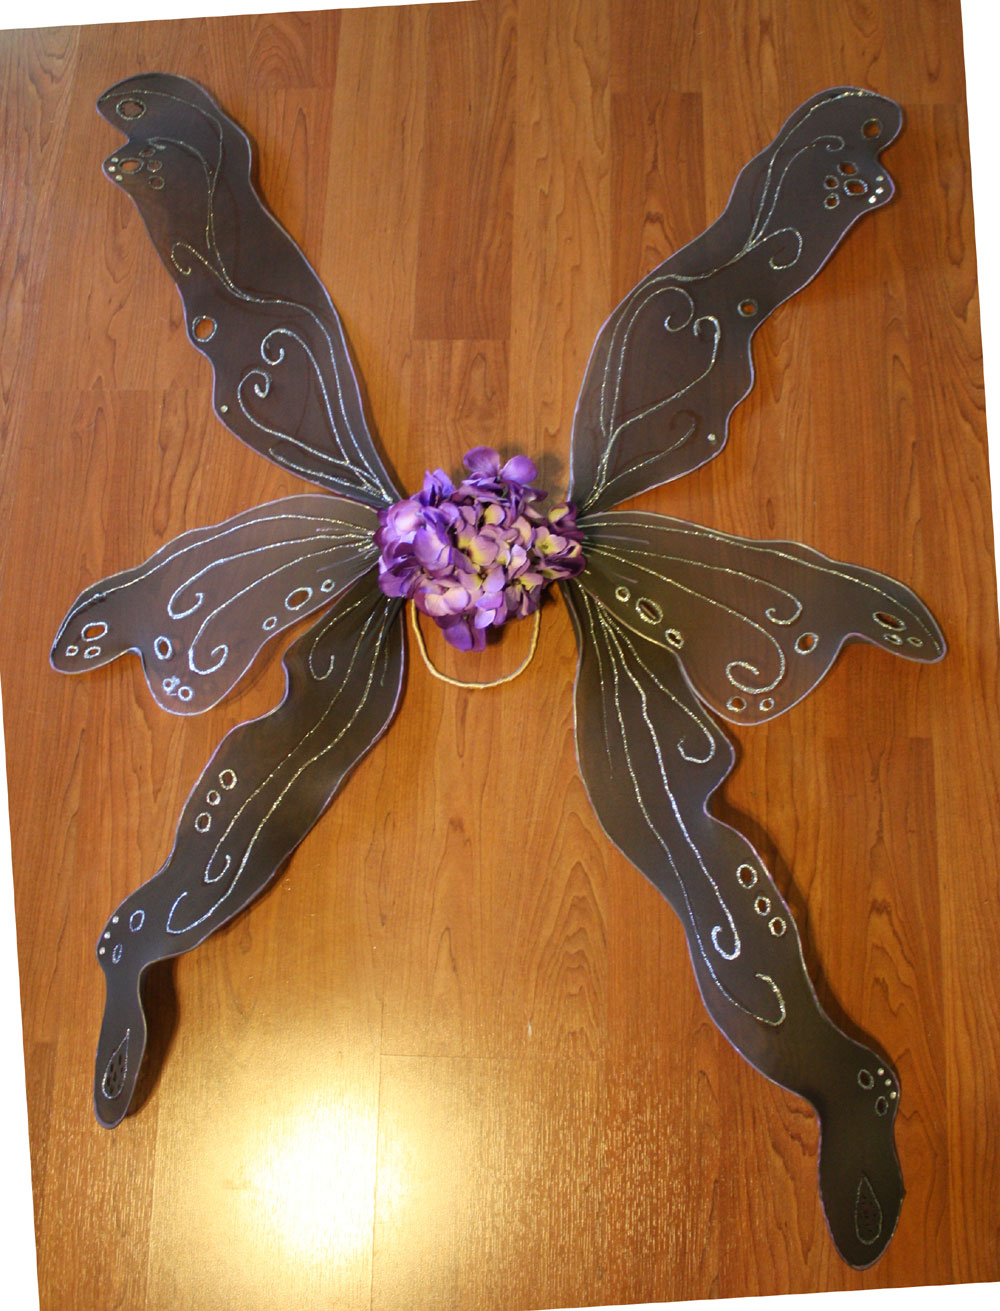 DIY adult fairy wings by Marie Spaulding on https://mariespaulding.wordpress.com